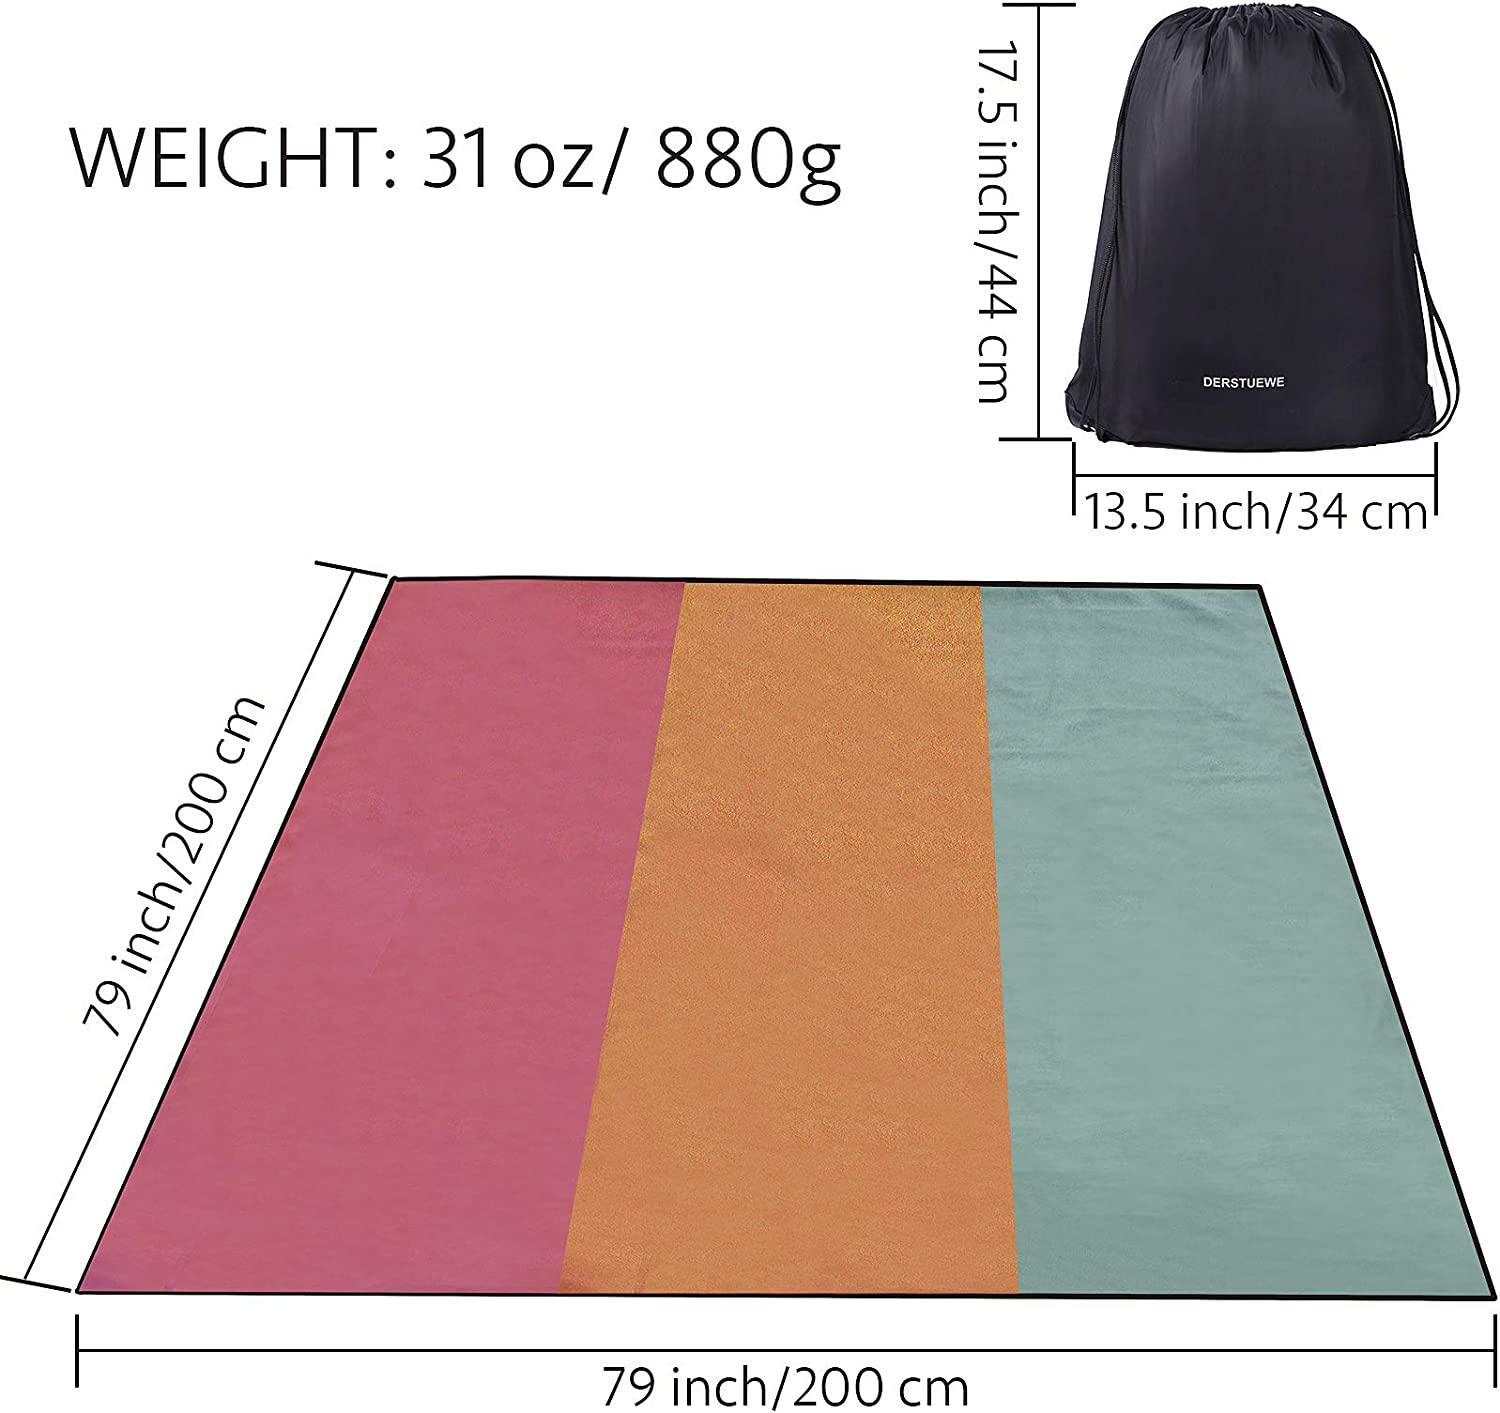 Picnic Camping JUNSTAR Oversize Outdoor Picnic Blankets Waterproof Foldable Fleece Blanket Suitable for Family Outdoor Stadium Beach All-Weather Camping Blanket